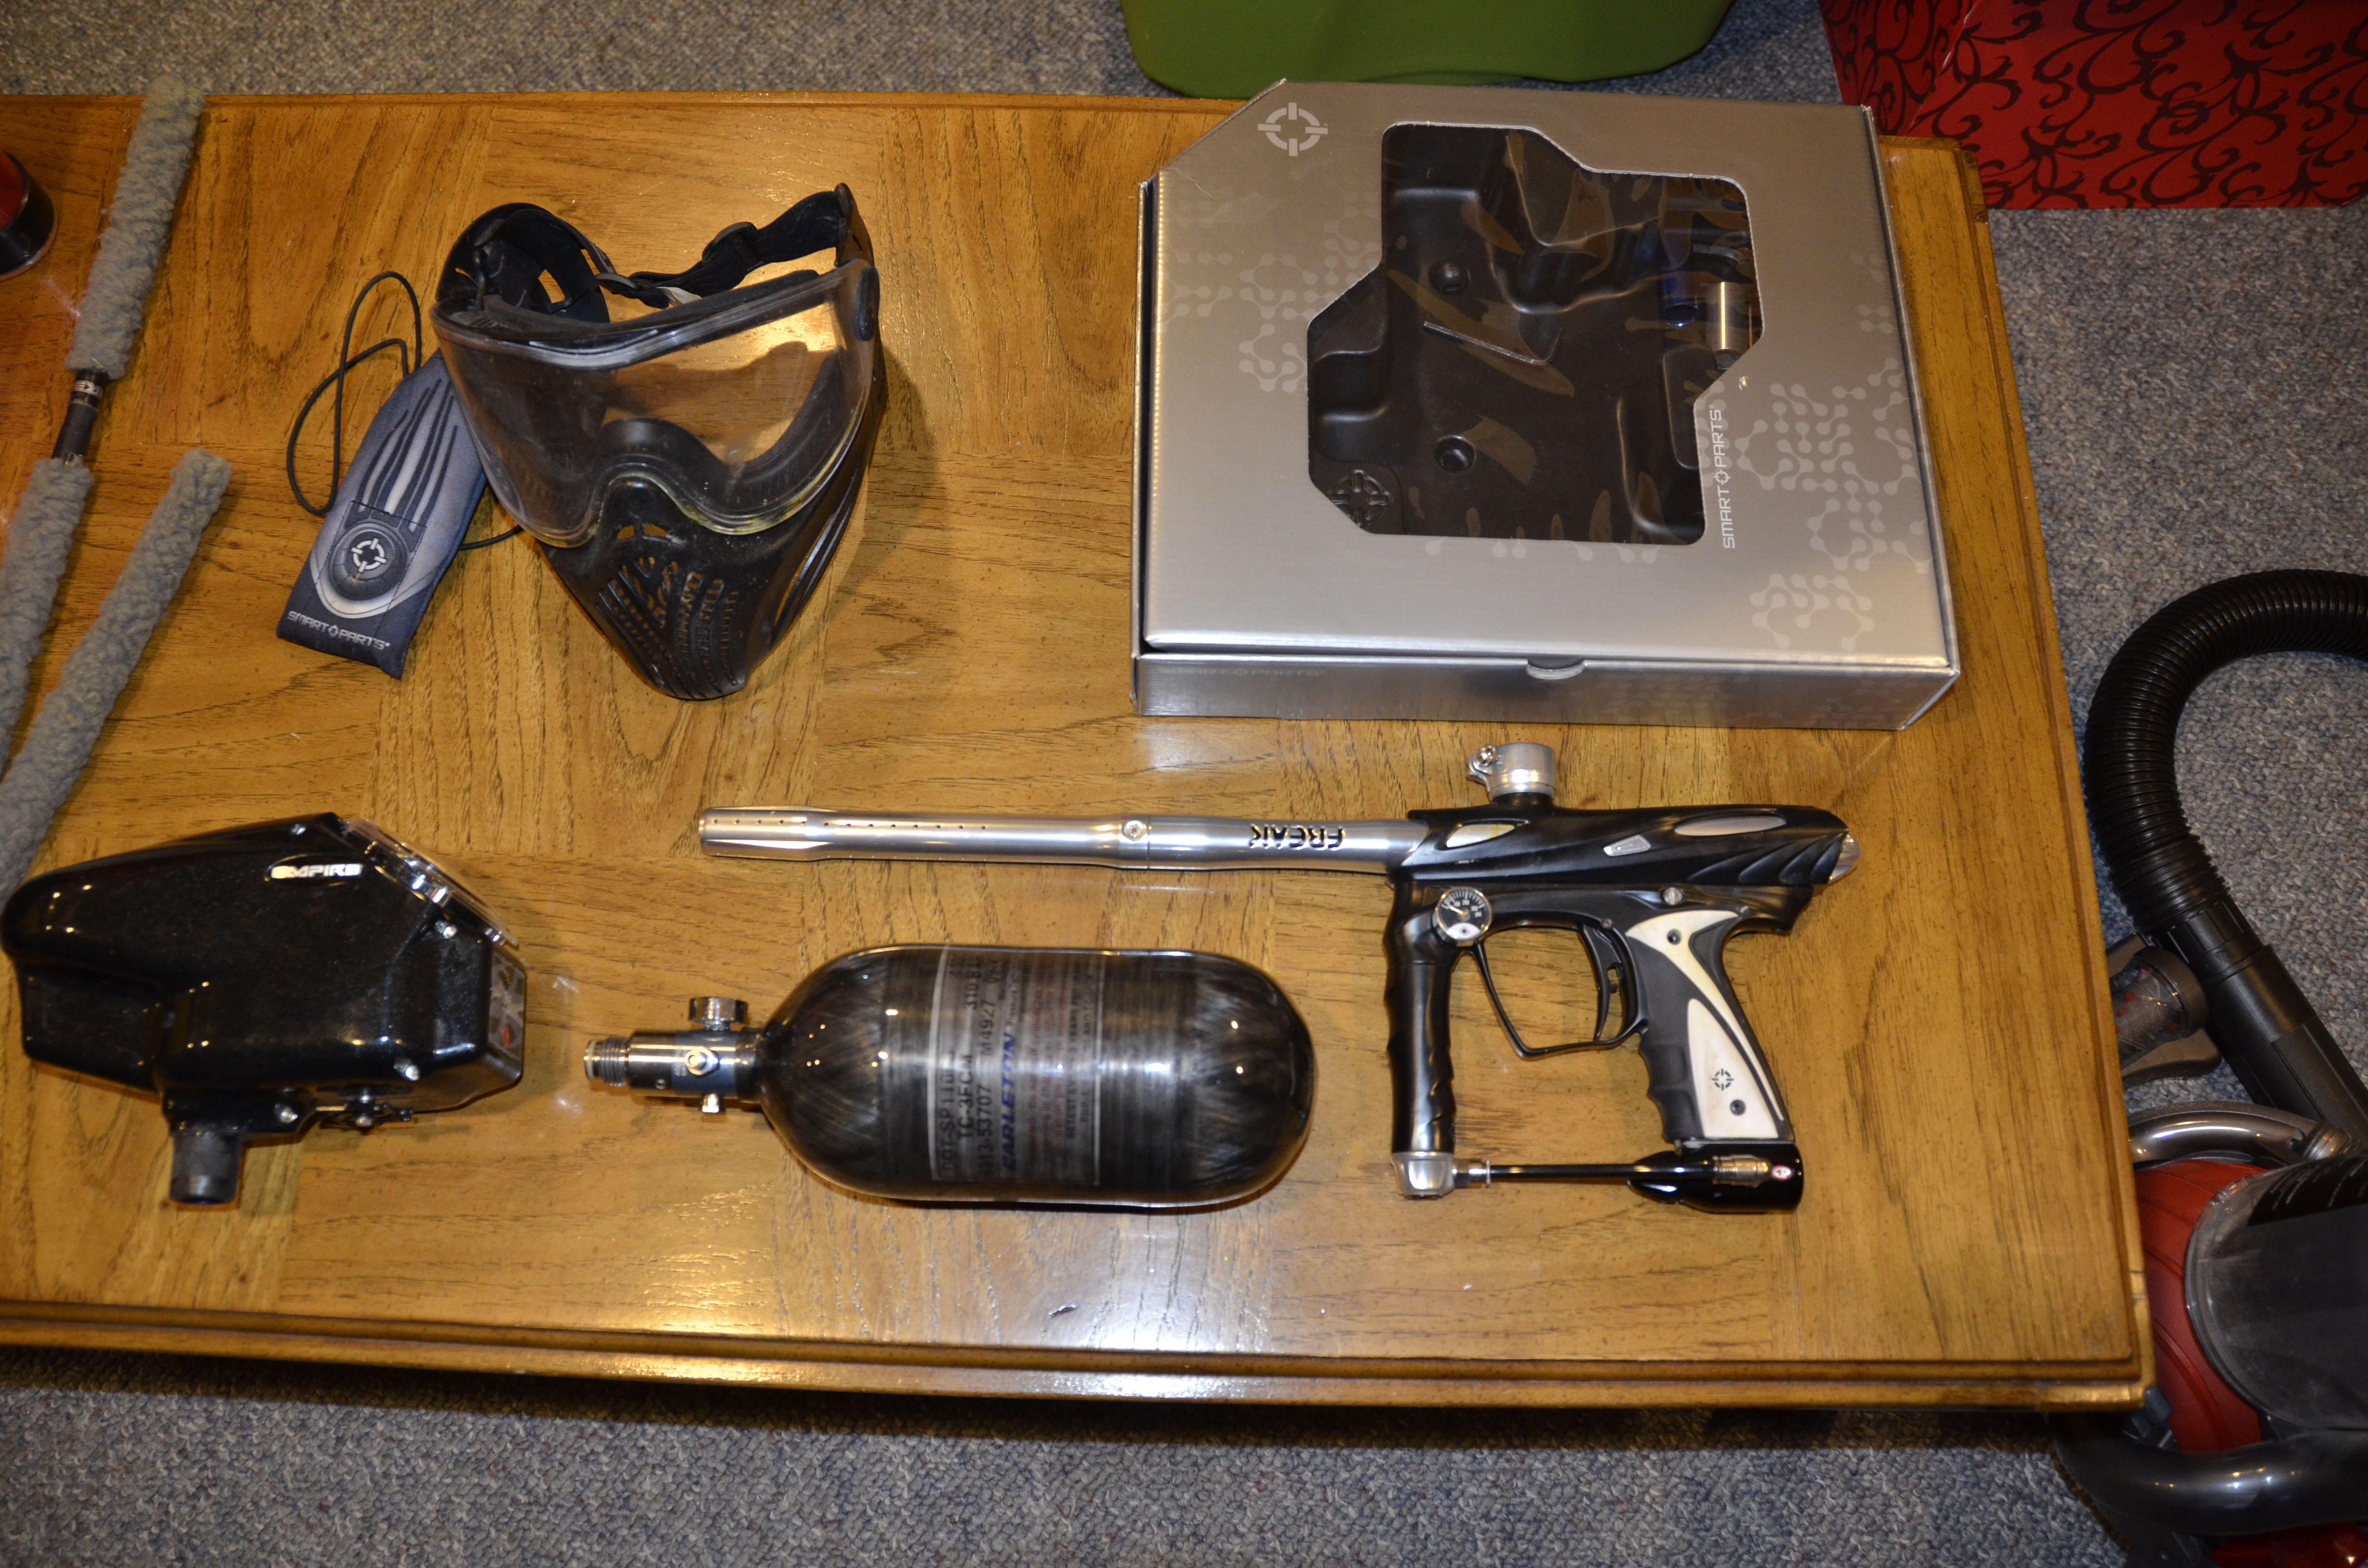 lost  marker parts smart empire include barrel tank paintball nitrogen freak eternal condom platinum 4500 trim black motorized buyer shipping request pictures carrier protector hopper original squeegee sleeve replaced drill hammer driver-- wanted accessories 3000 rounds dewalt extras o-rings condition